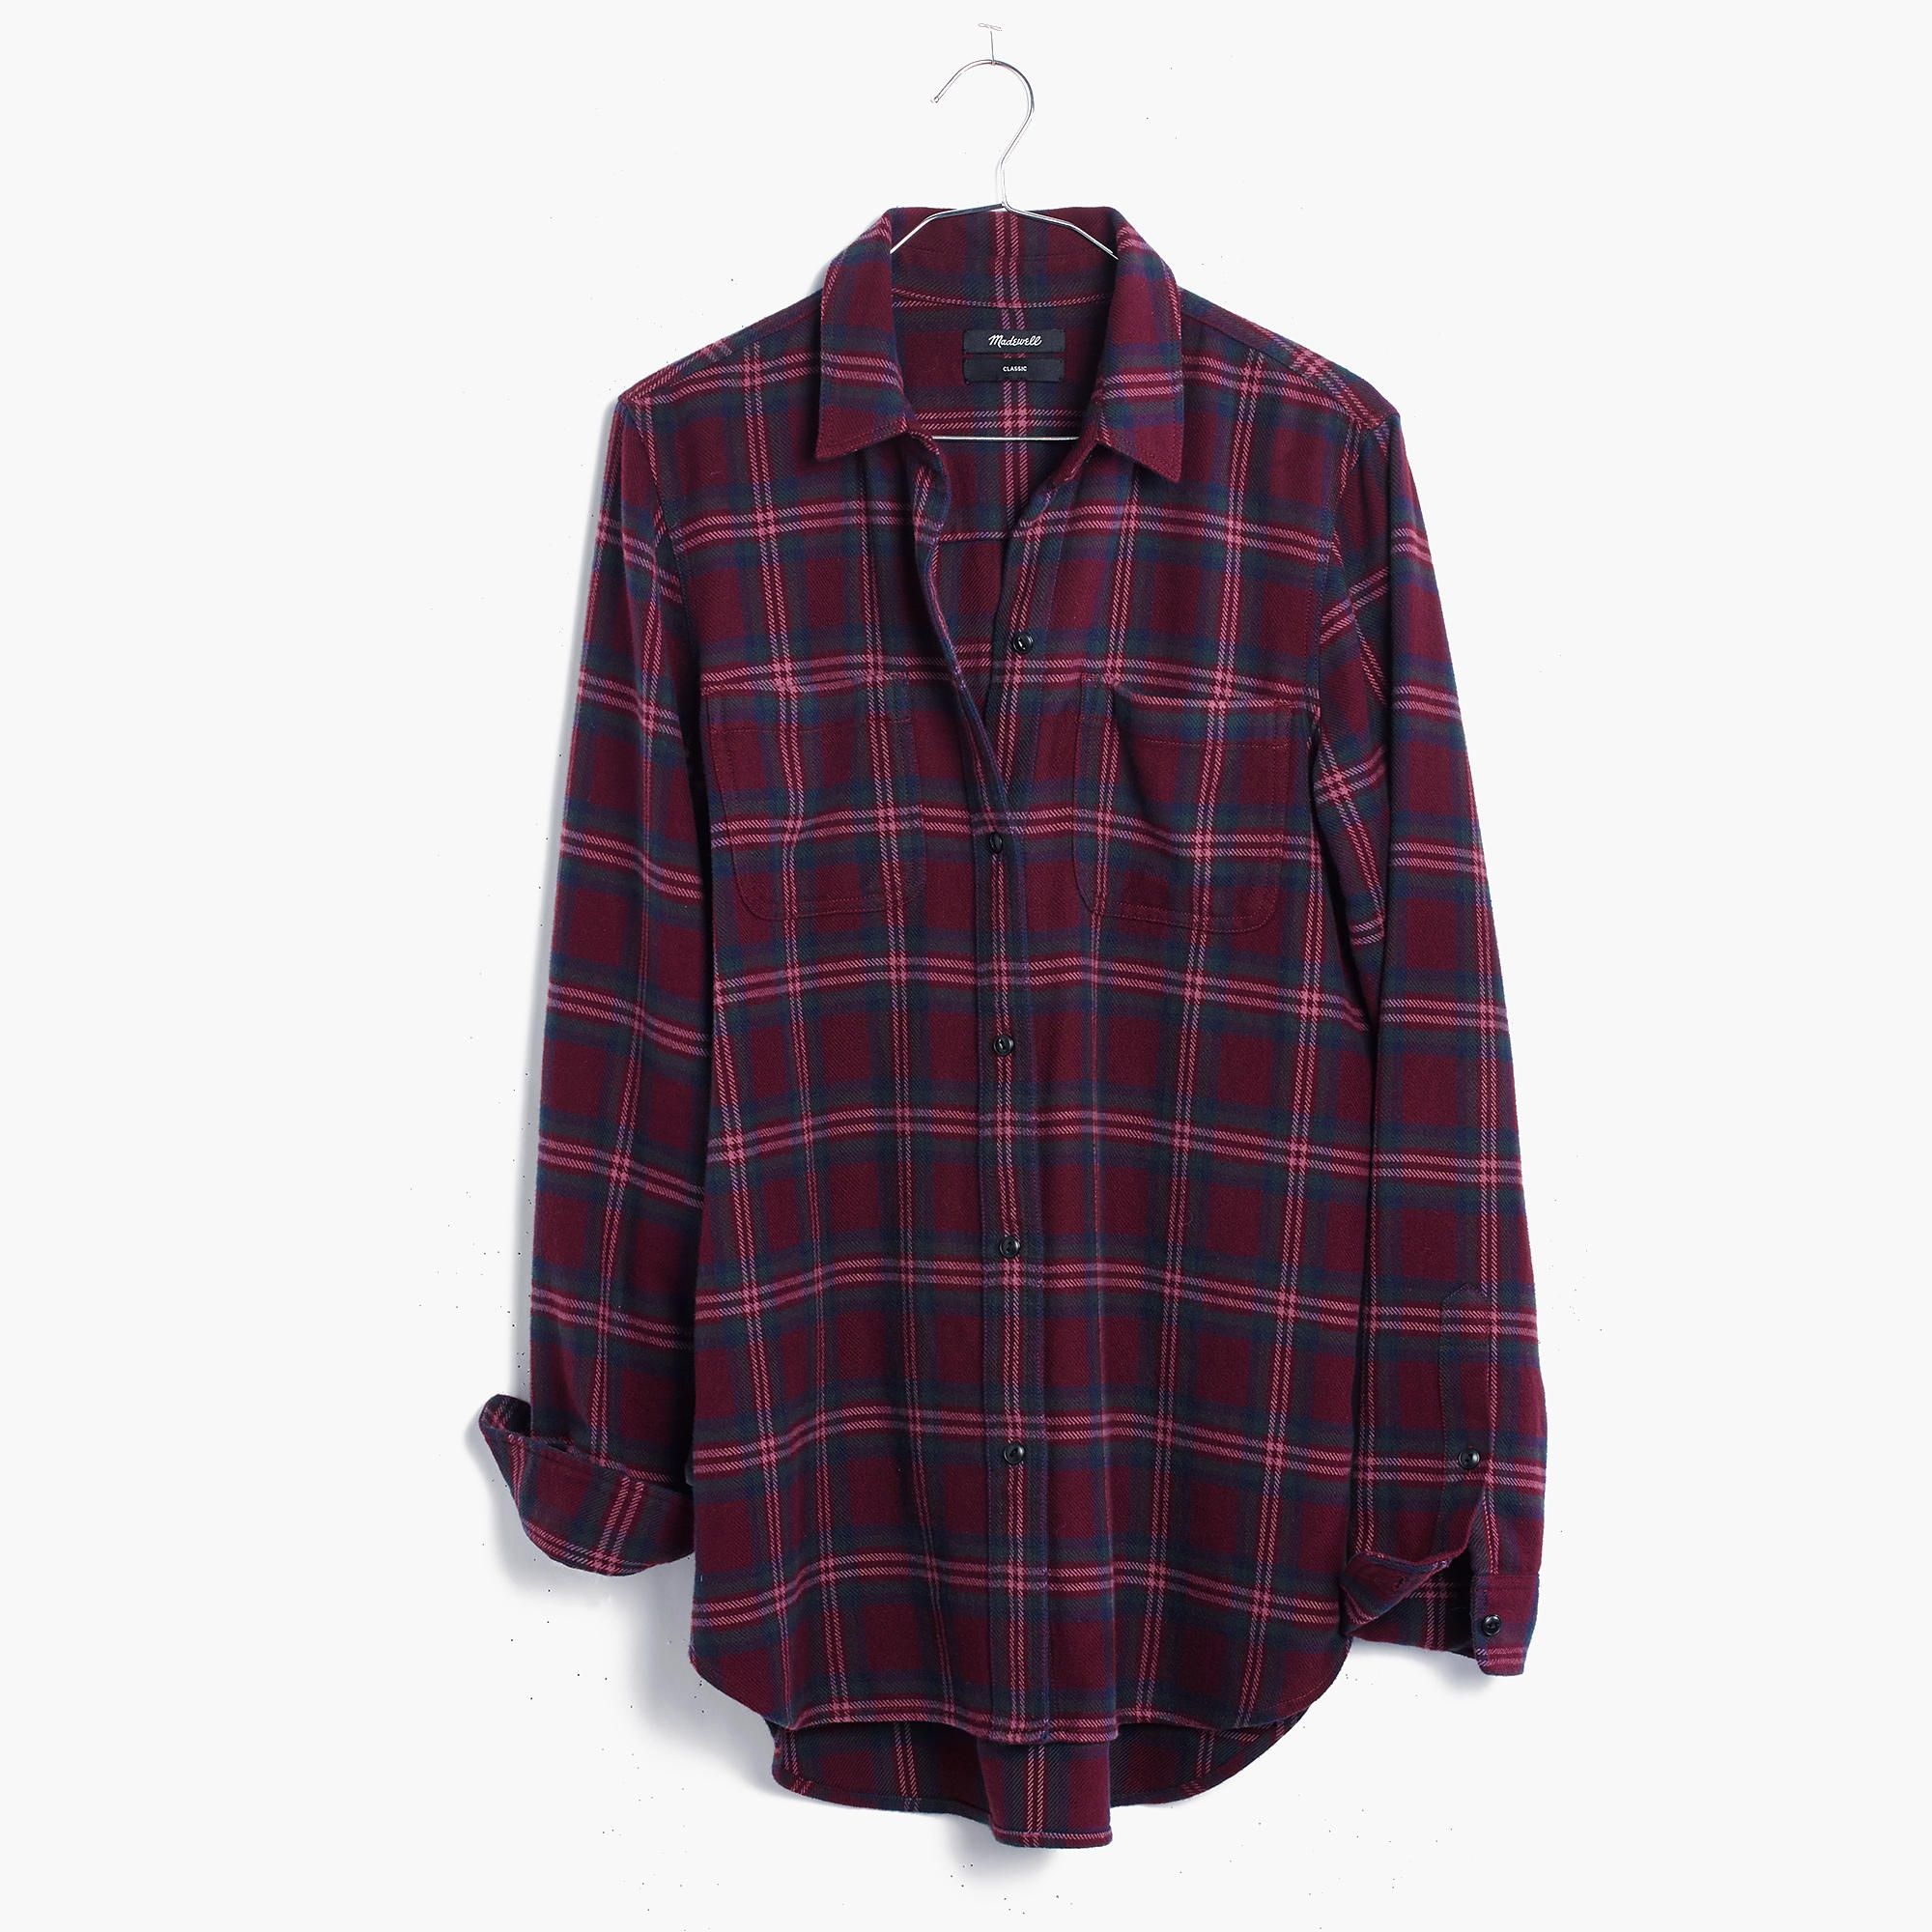 Flannel shirt outfits for women  Flannel Classic ExBoyfriend Shirt in Jensen Plaid  AllProducts